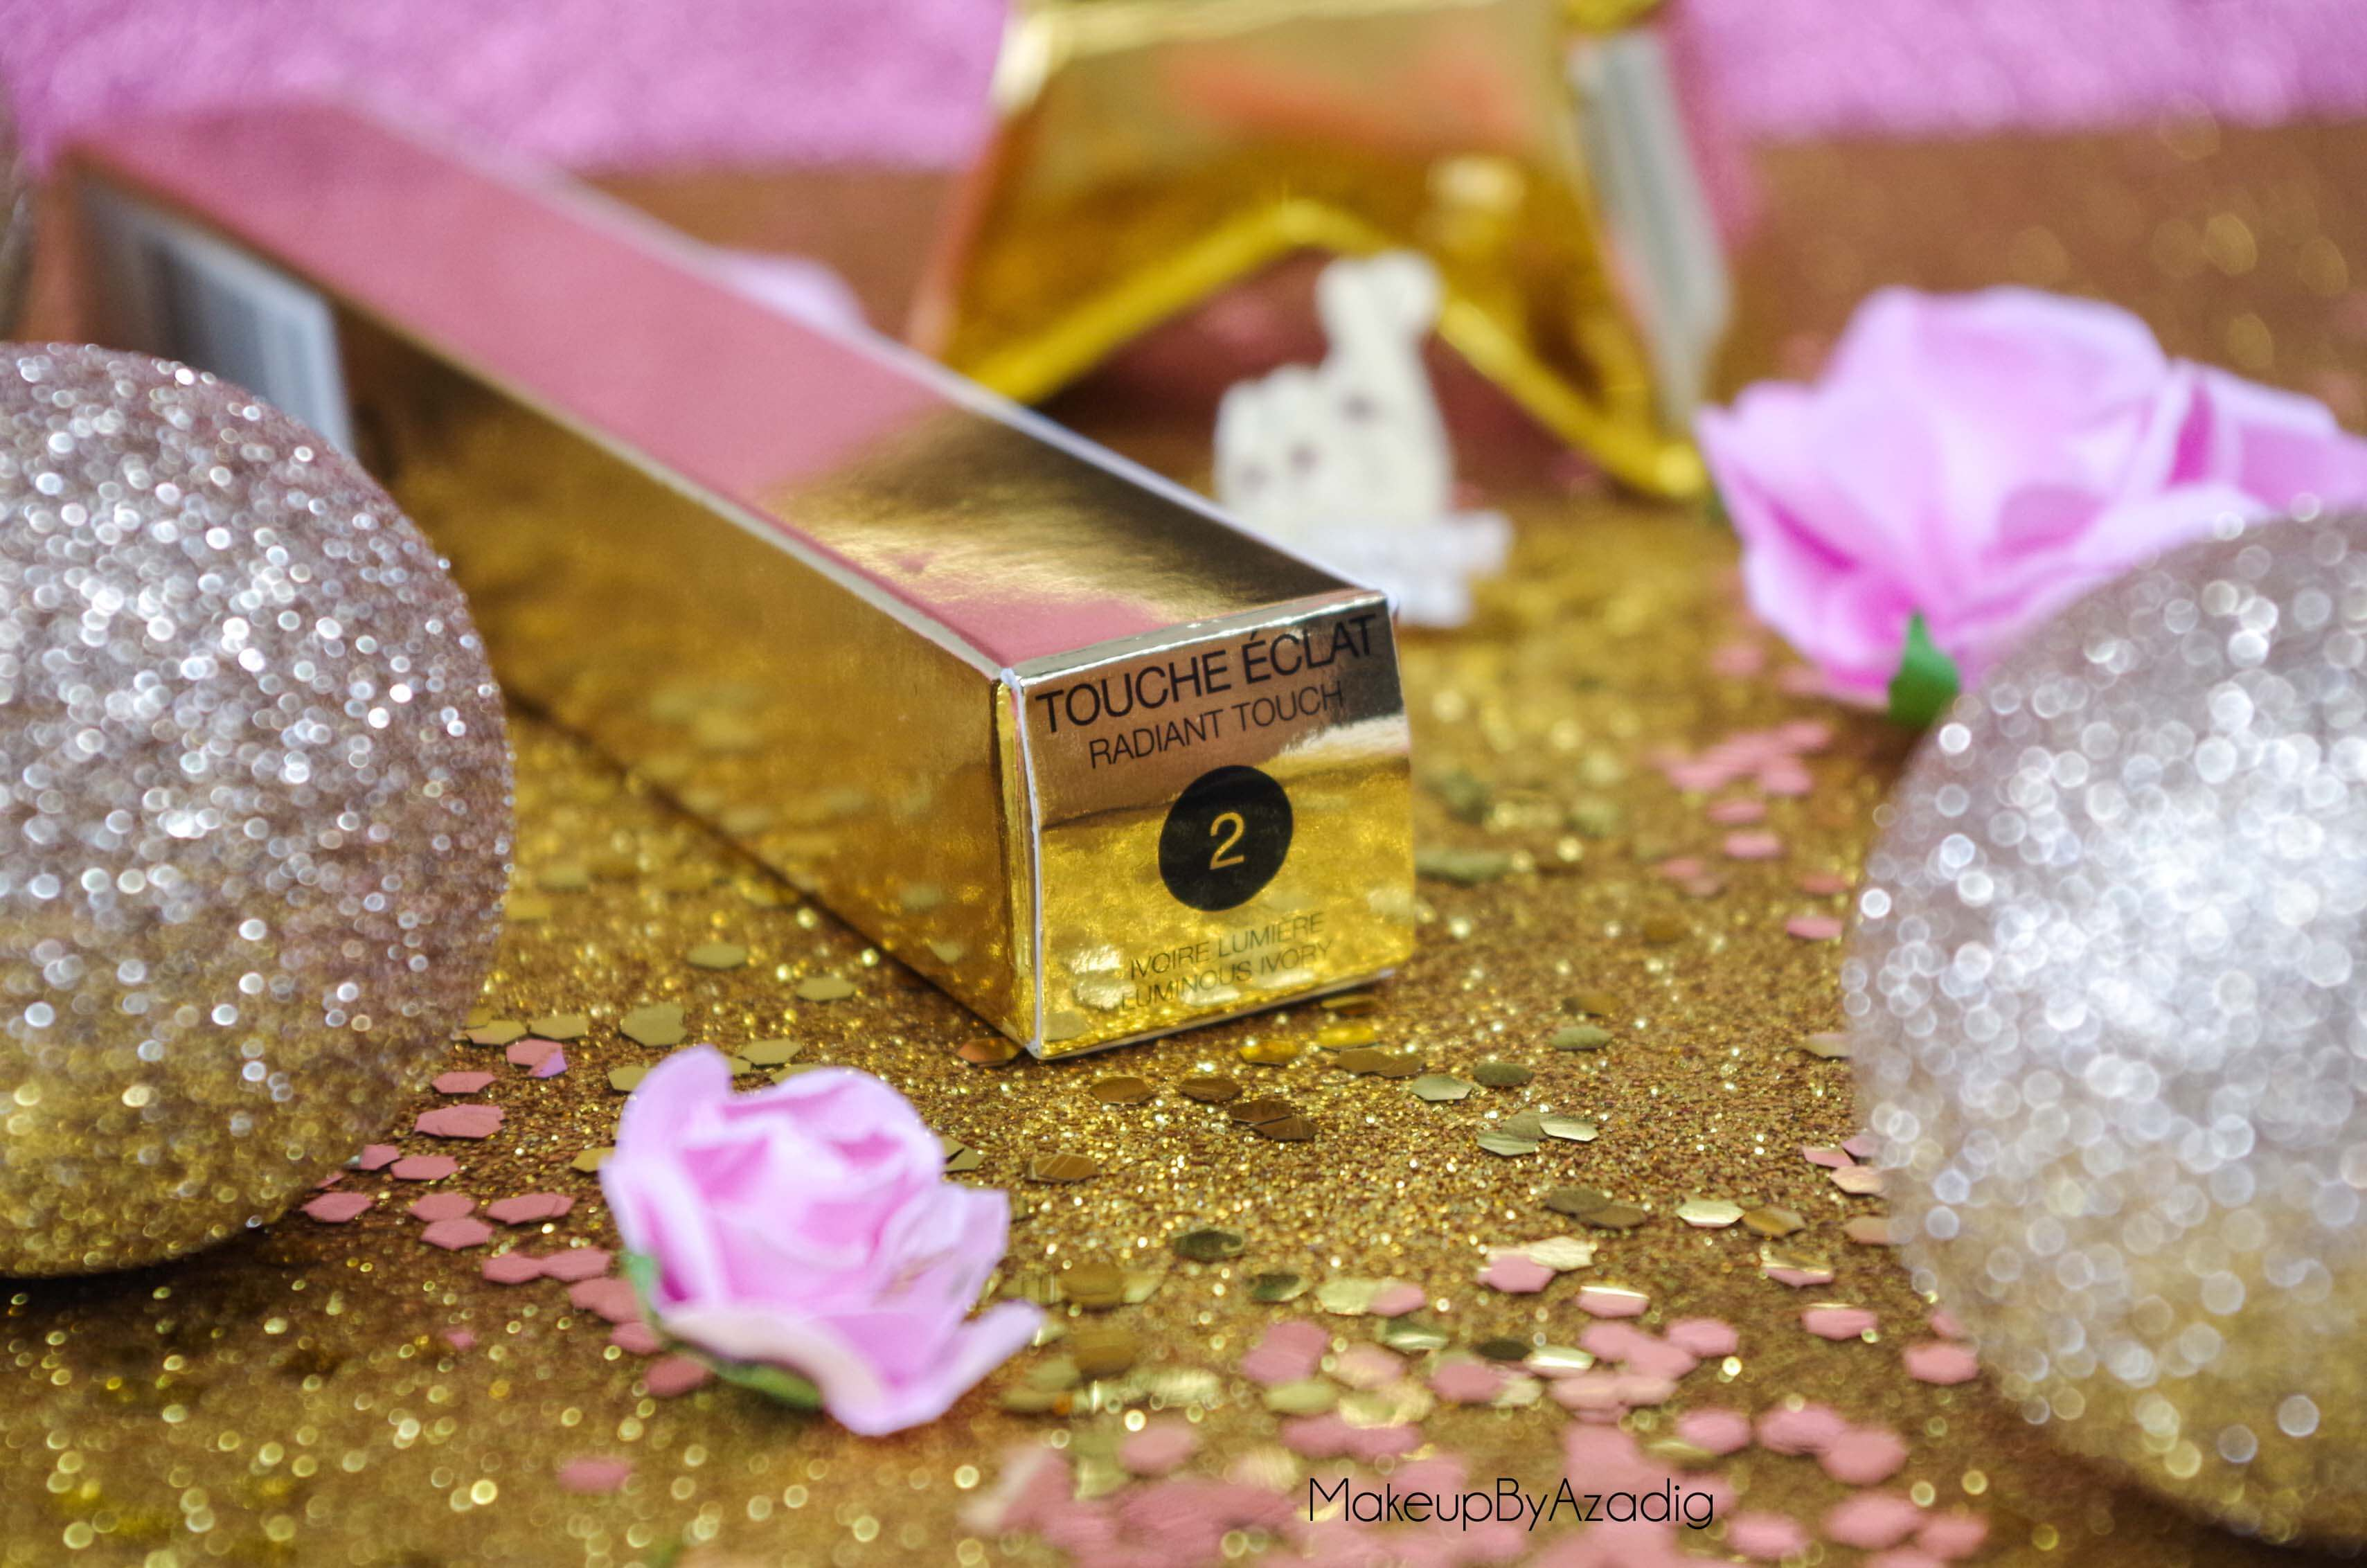 teinte-stylo-touche-eclat-radiant-touch-enlumineur-yves-saint-laurent-ysl-revue-review-avis-prix-lucette-makeupbyazadig-nouvelle-collection